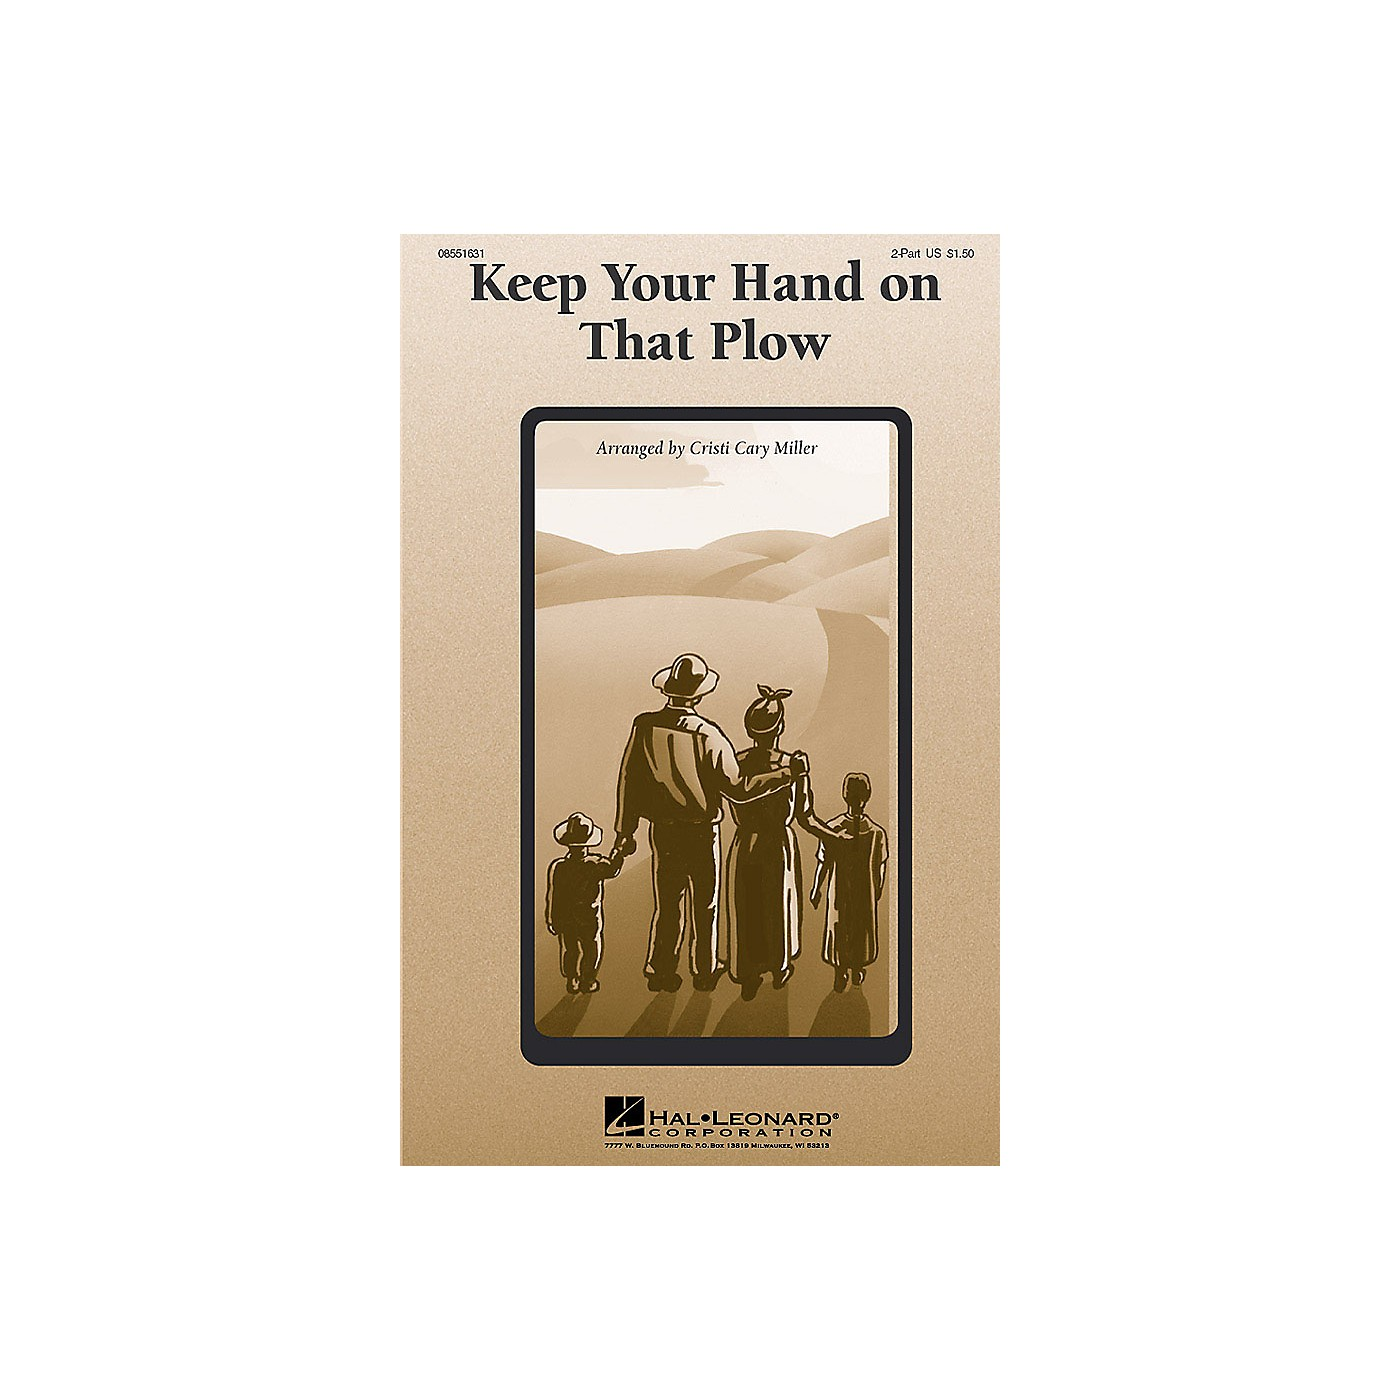 Hal Leonard Keep Your Hand On That Plow 2-Part arranged by Cristi Cary Miller thumbnail